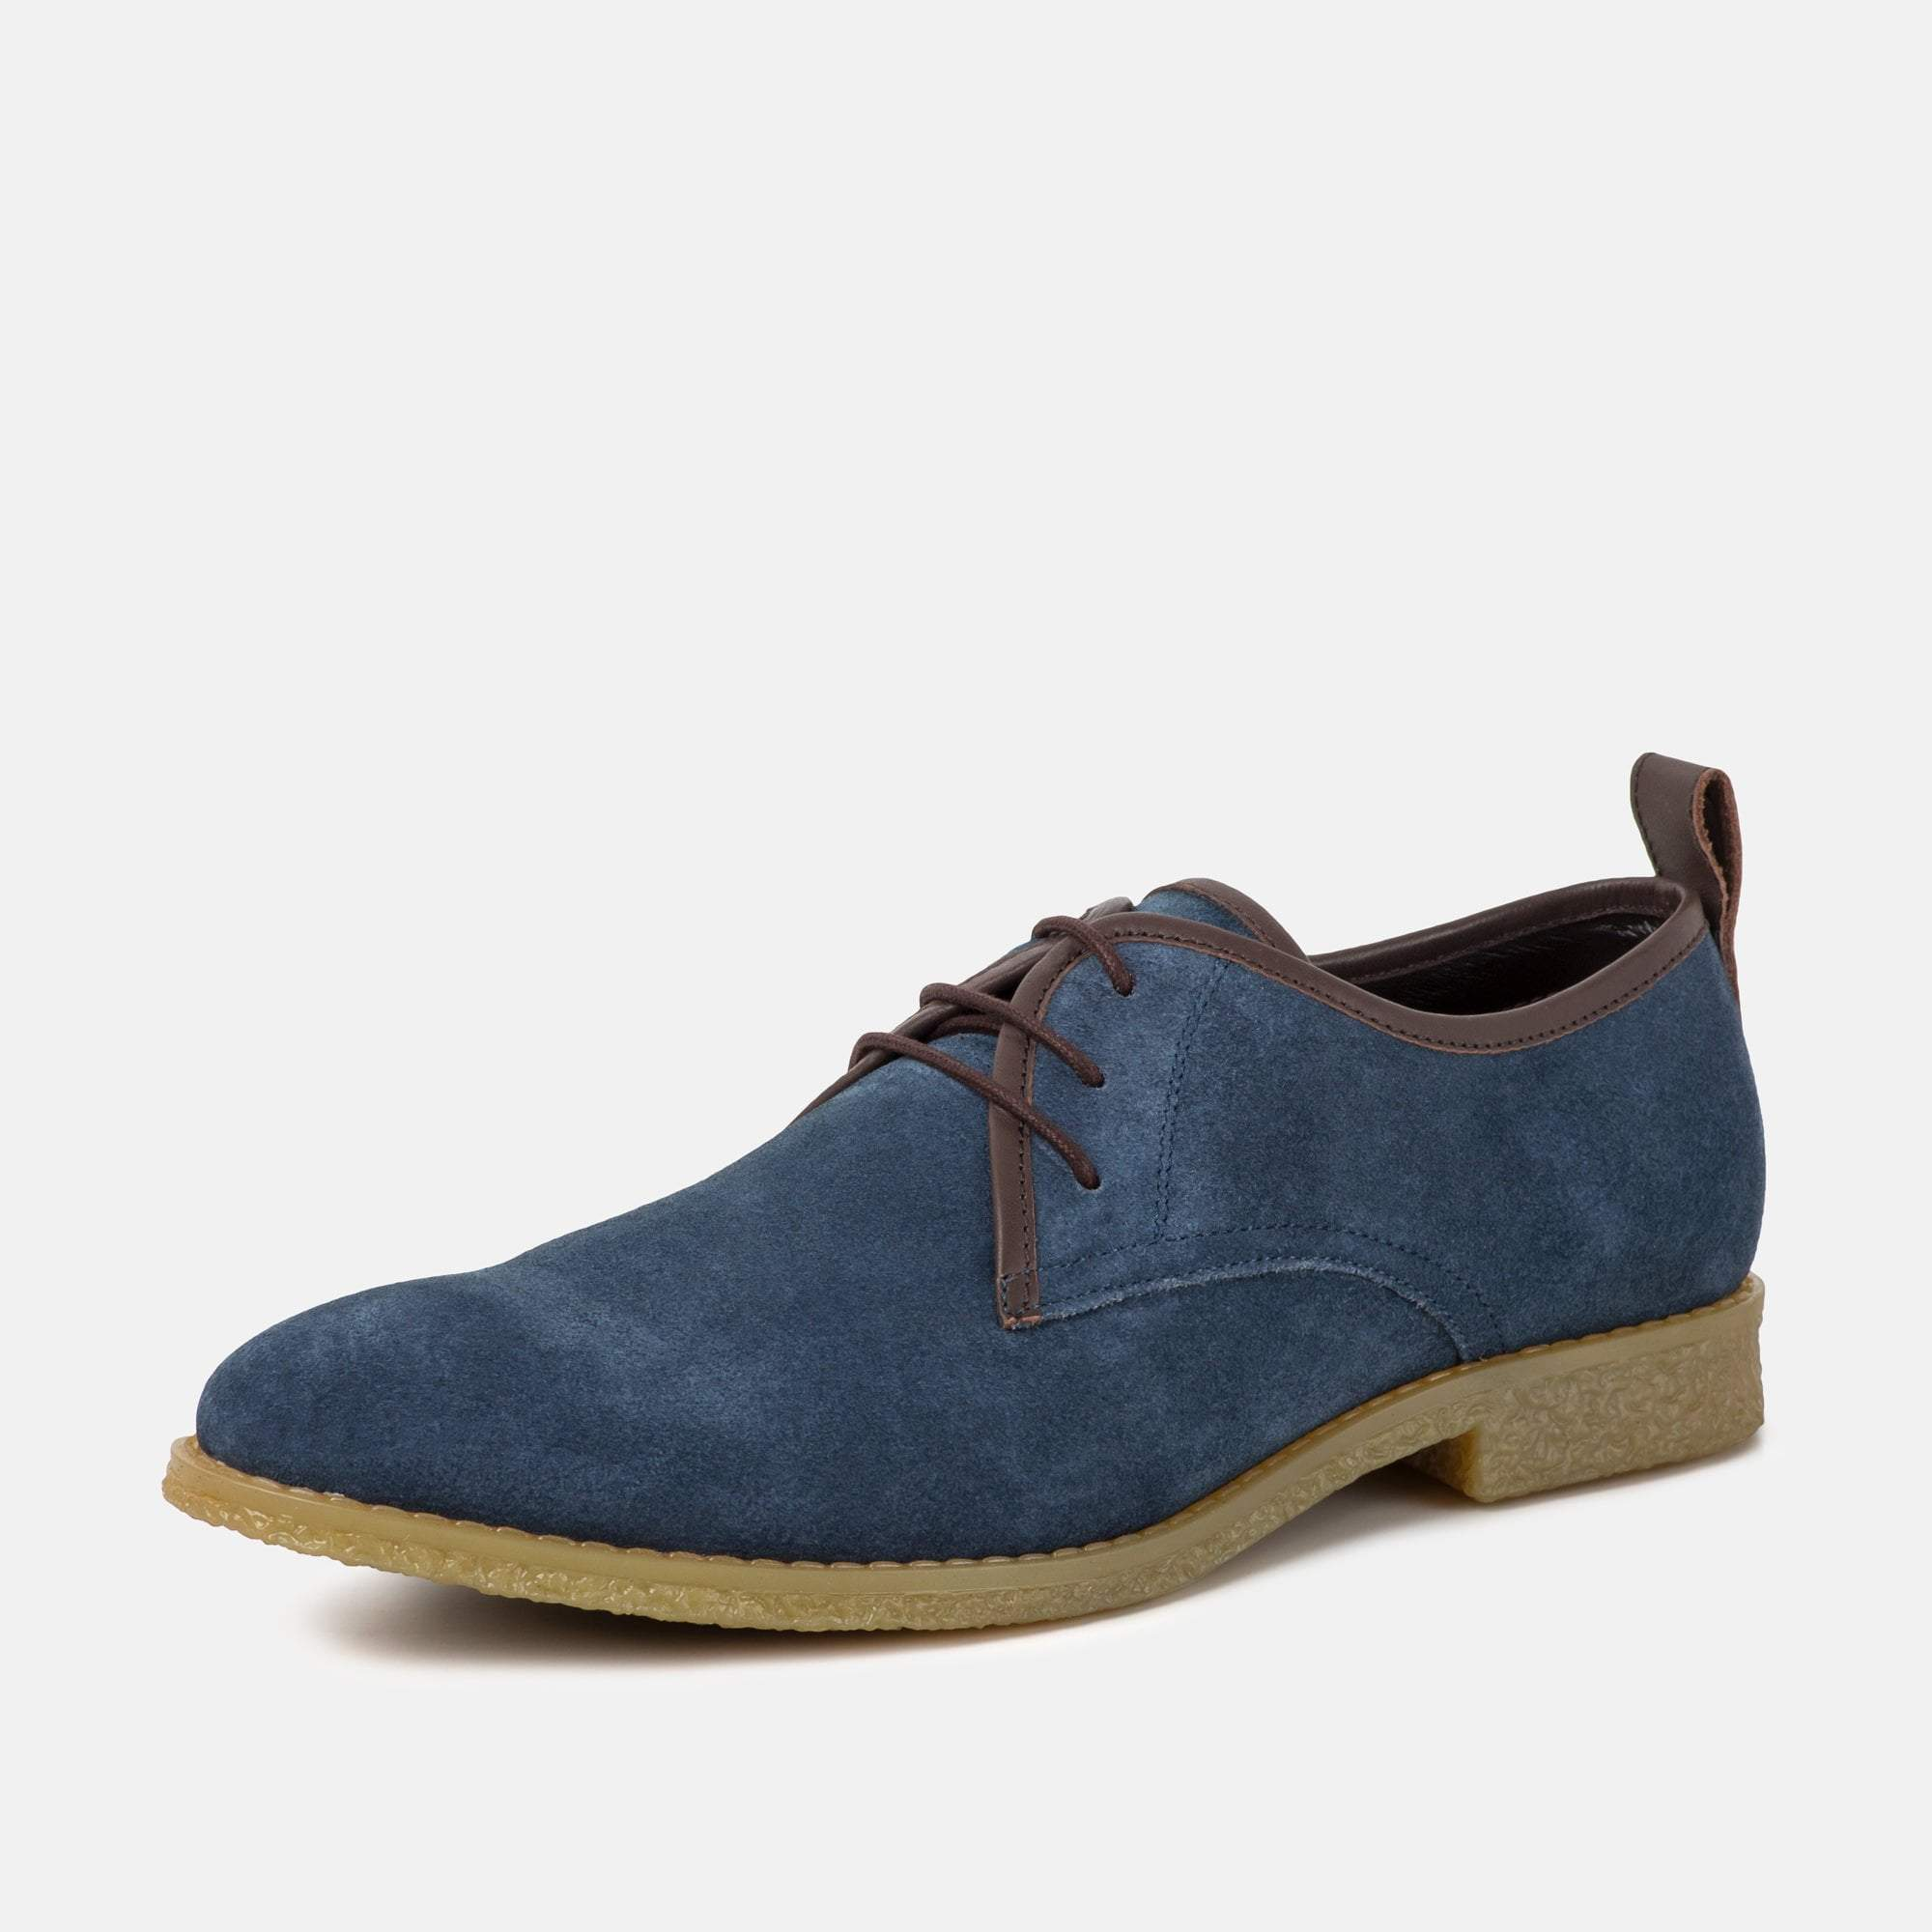 Redfoot Footwear UK 6 / EURO 39 / US 7 / Navy / Suede LEWIS NAVY